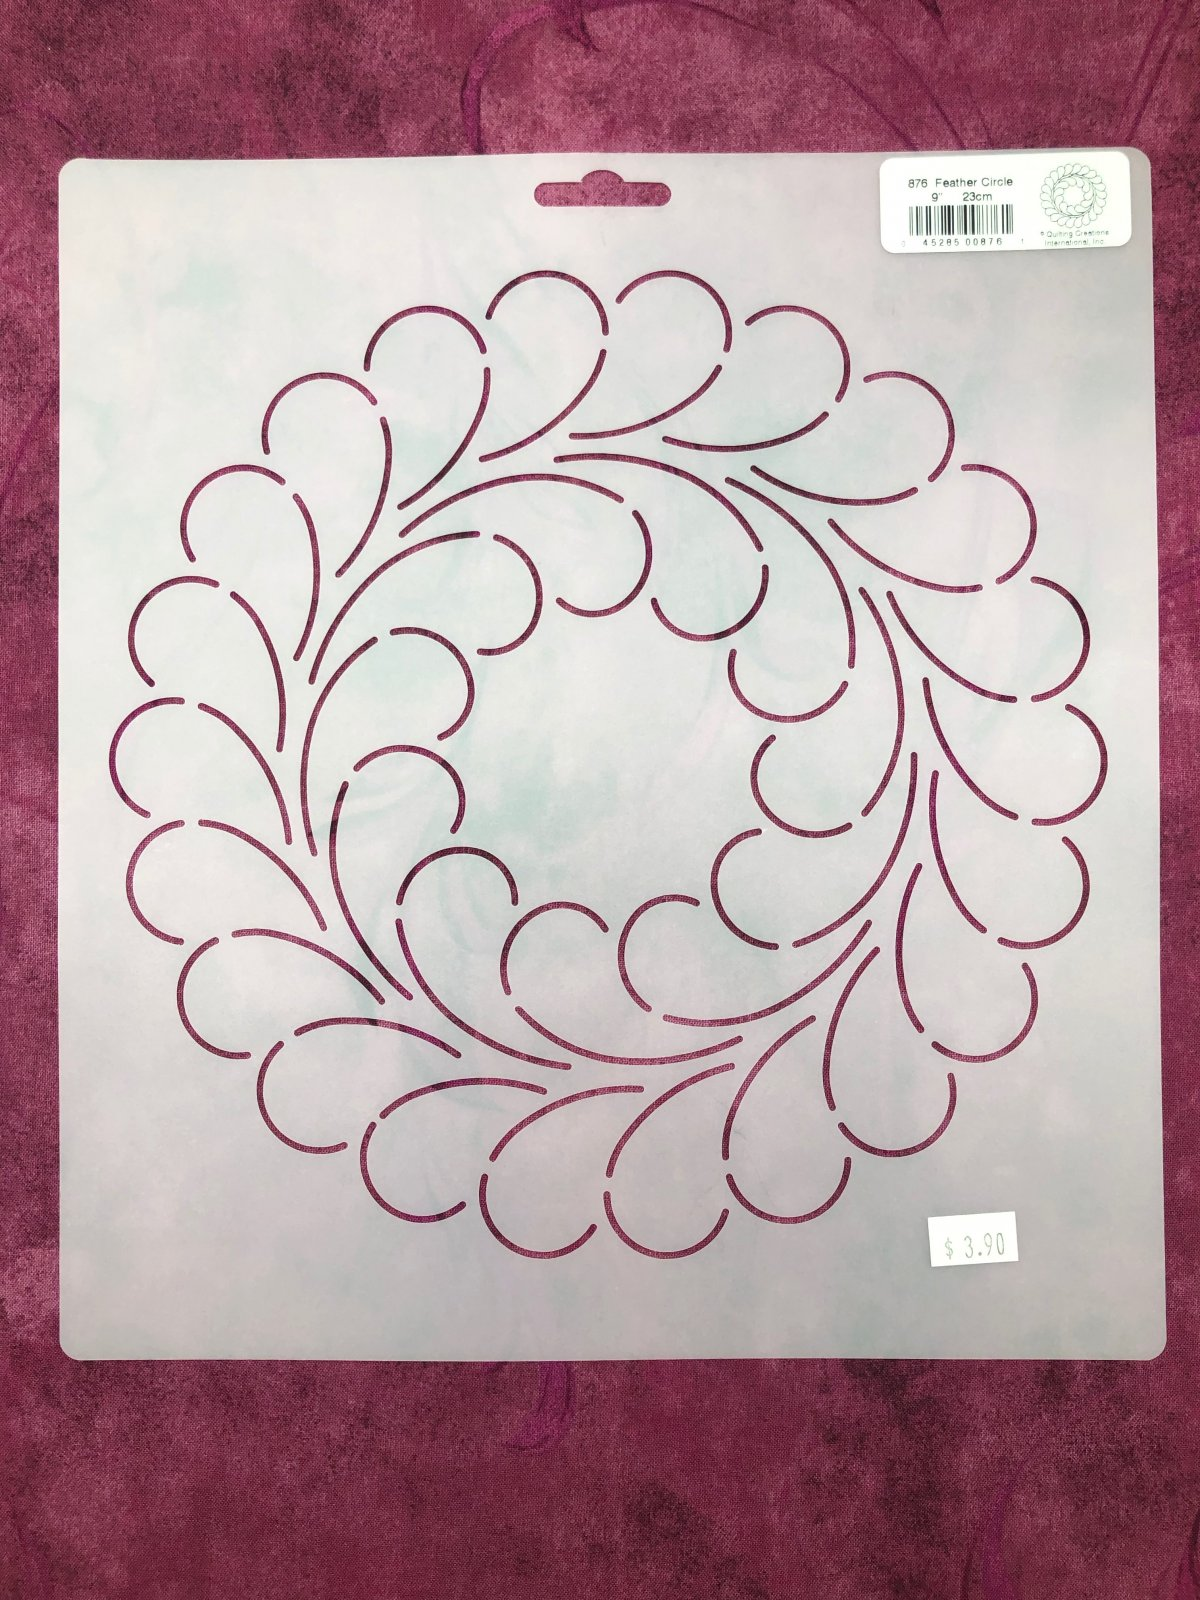 876 Feather Circle 9 Inch Stencil